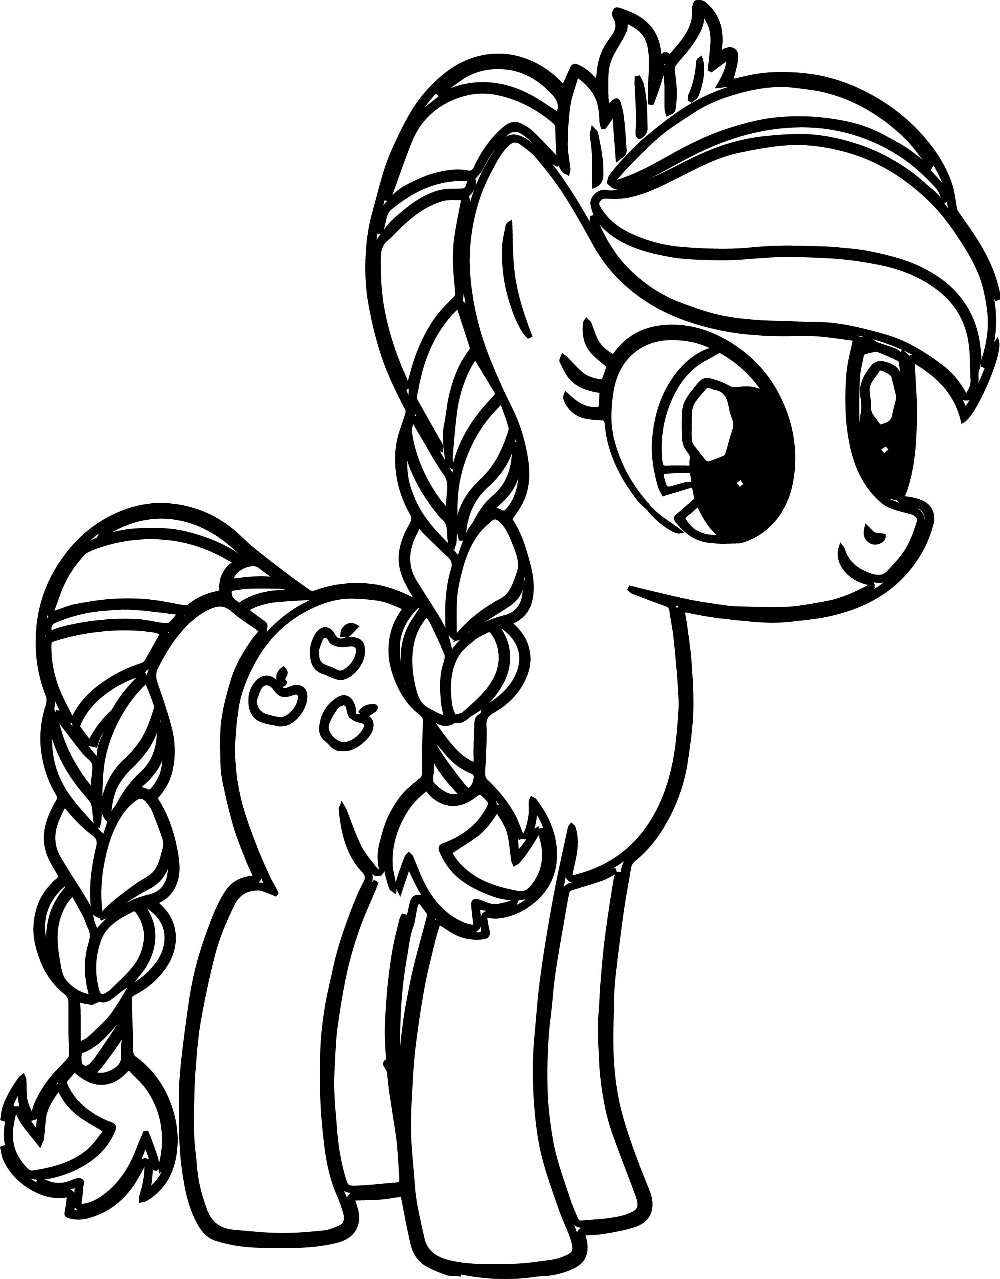 Pony Cartoon My Little Pony Coloring Page 003 In 2020 My Little Pony Printable My Little Pony Coloring Horse Coloring Pages